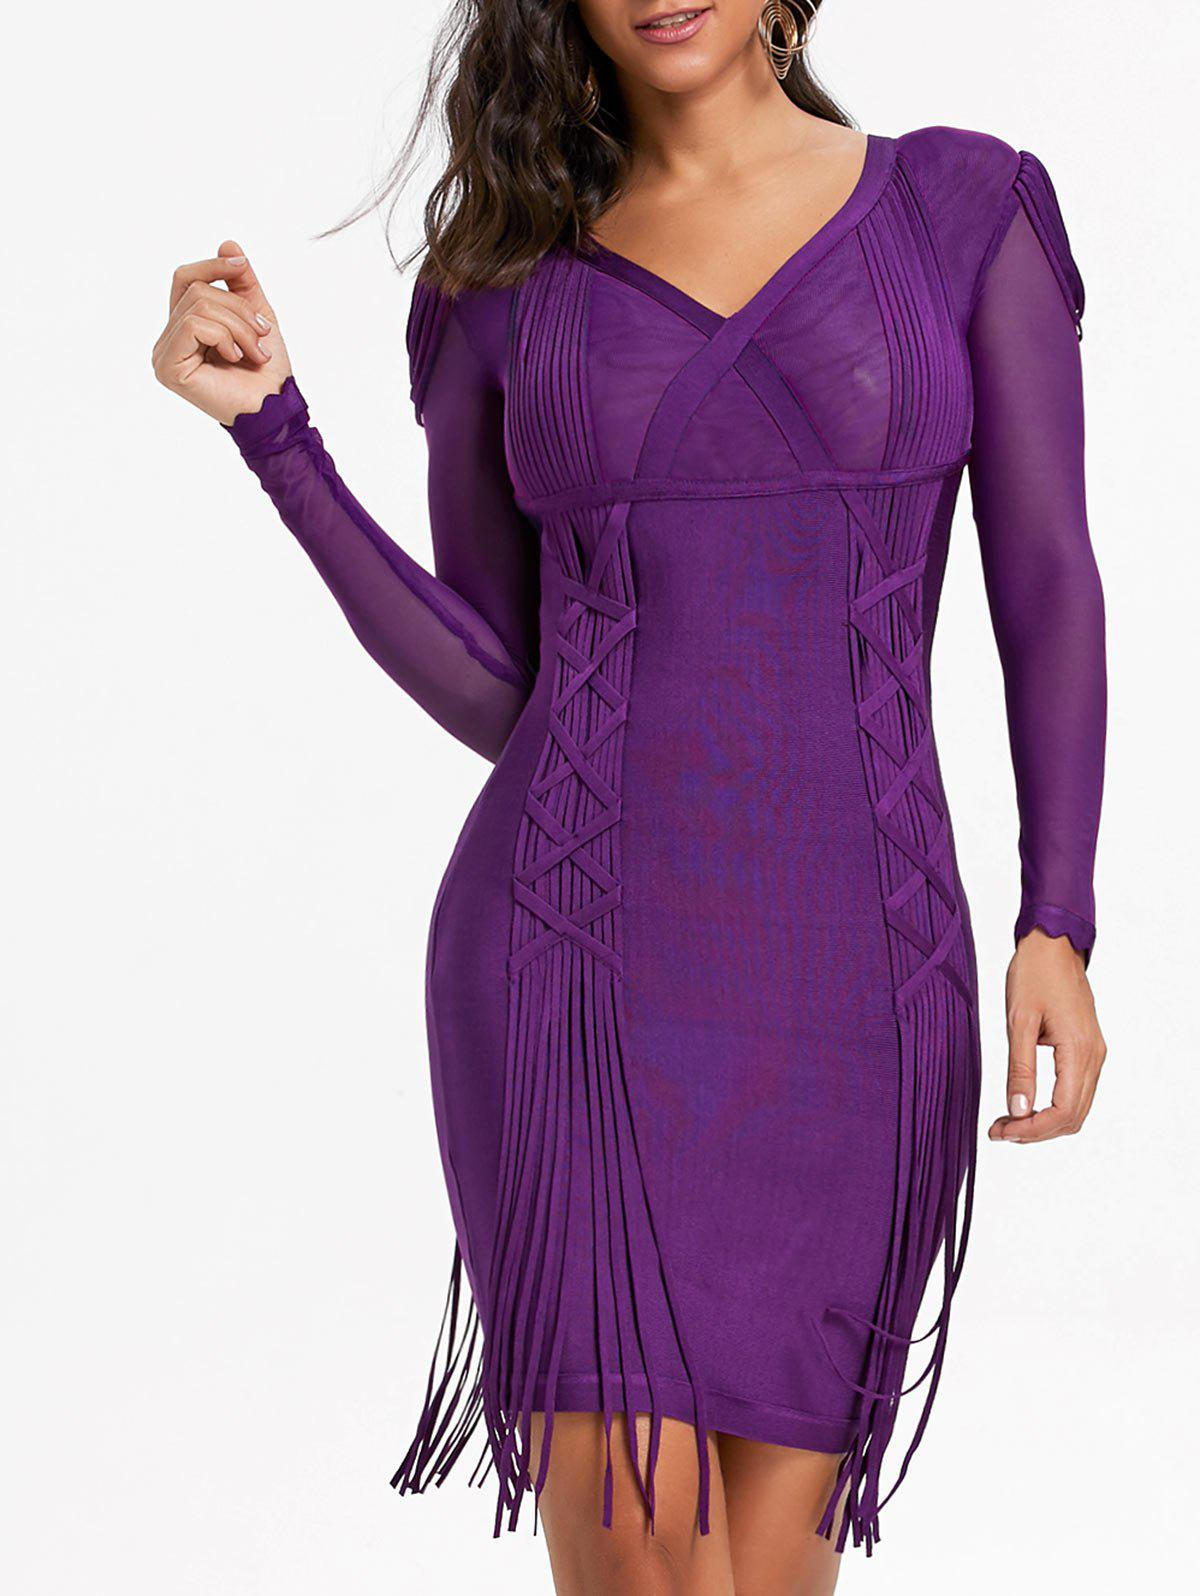 Mesh Long Sleeve Fringe Bandage Dress - PURPLE L